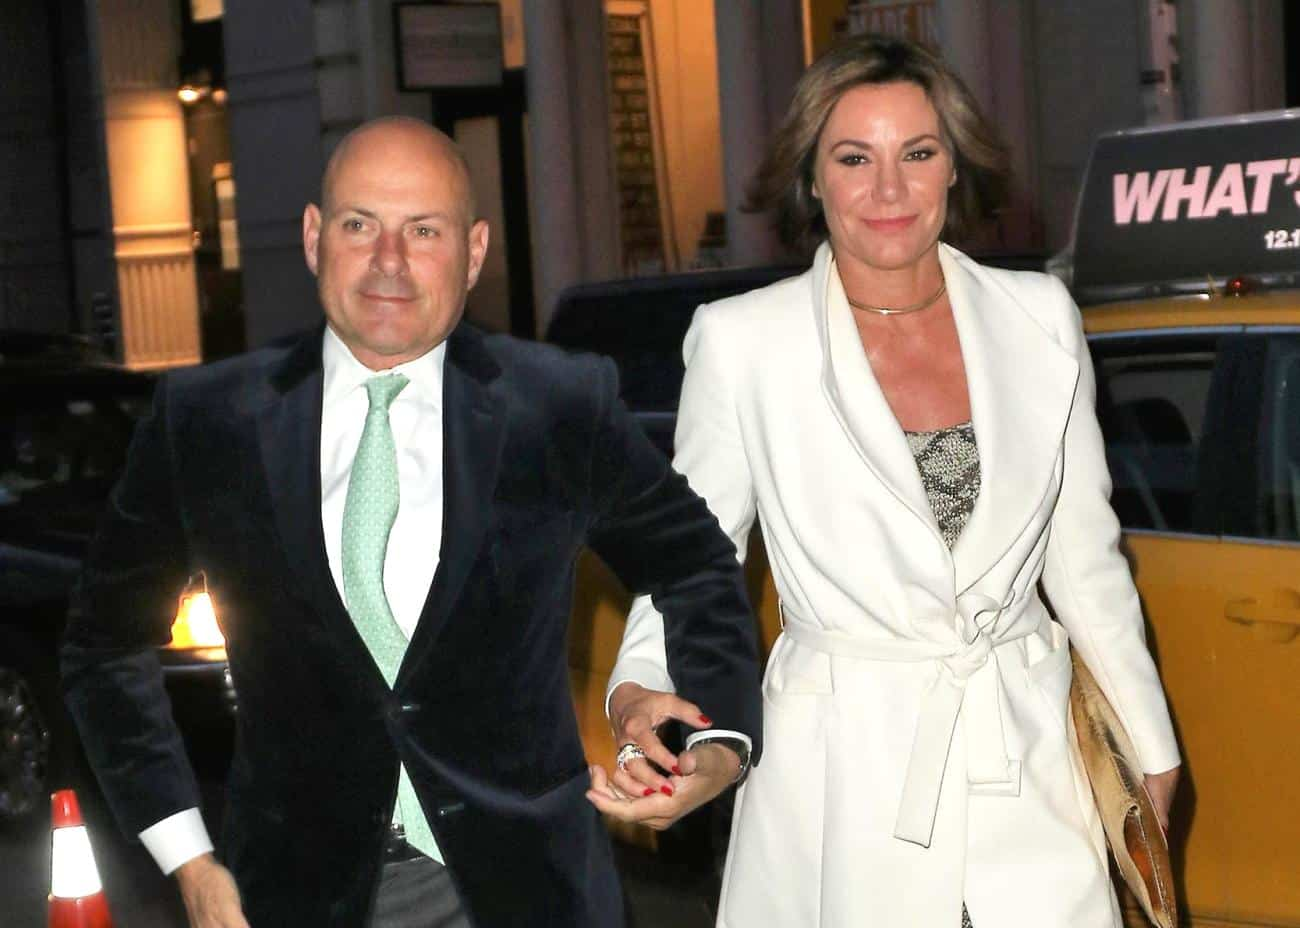 RHONY Star LuAnn de Lesseps Responds After Ex-Husband Tom D'Agostino Jr Accuses Her of Cheating